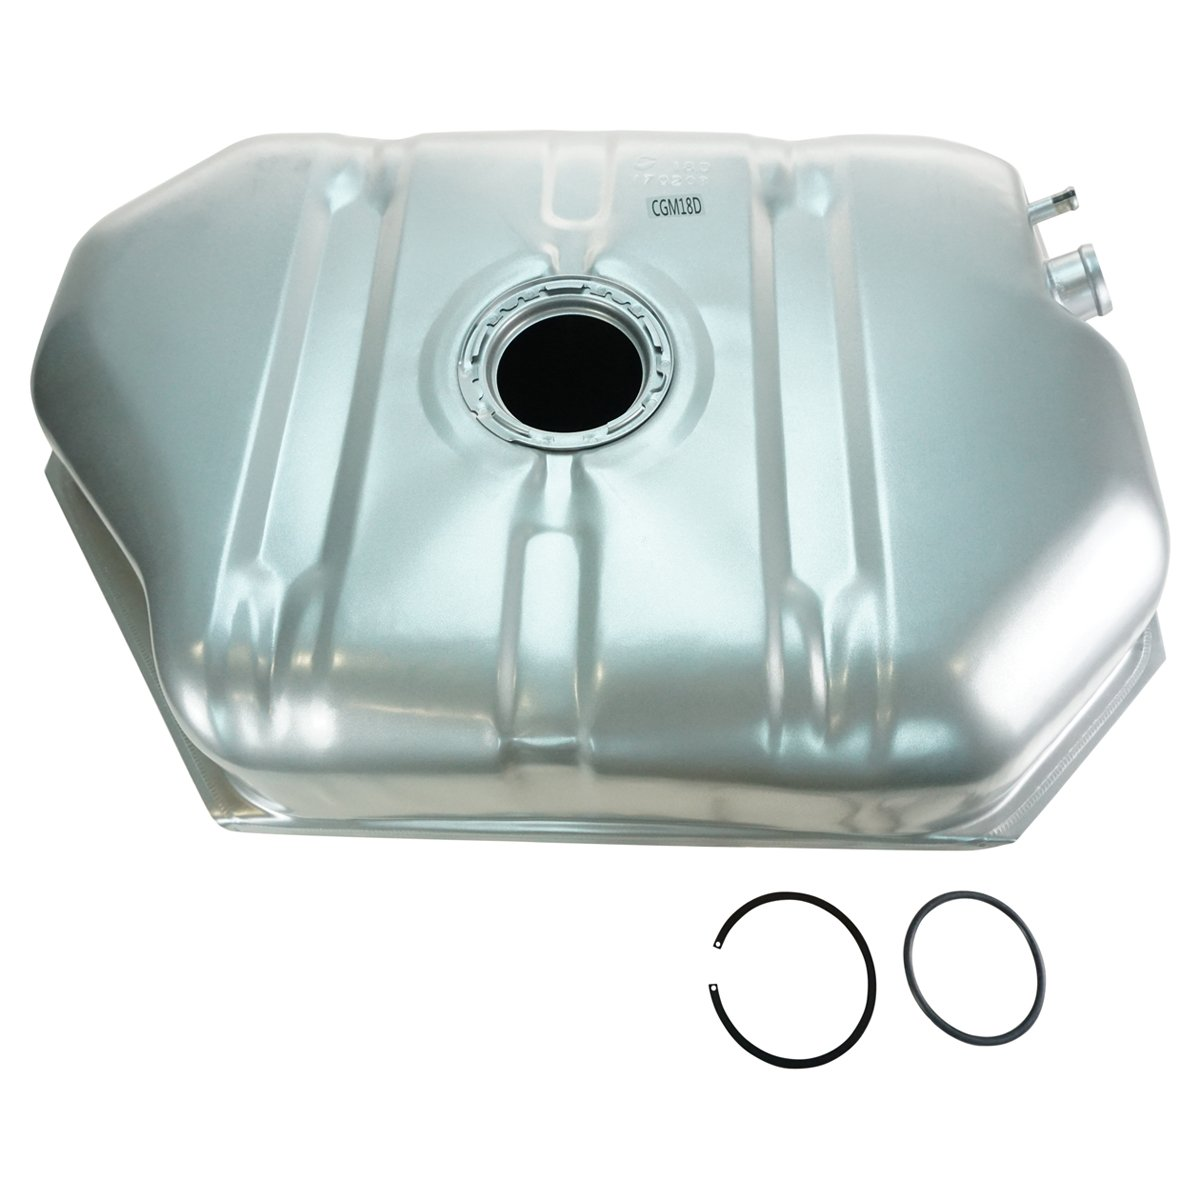 Fuel Gas Tank with Straps 19 Gallon for 97-02 Chevy GMC Blazer Jimmy 2 Door